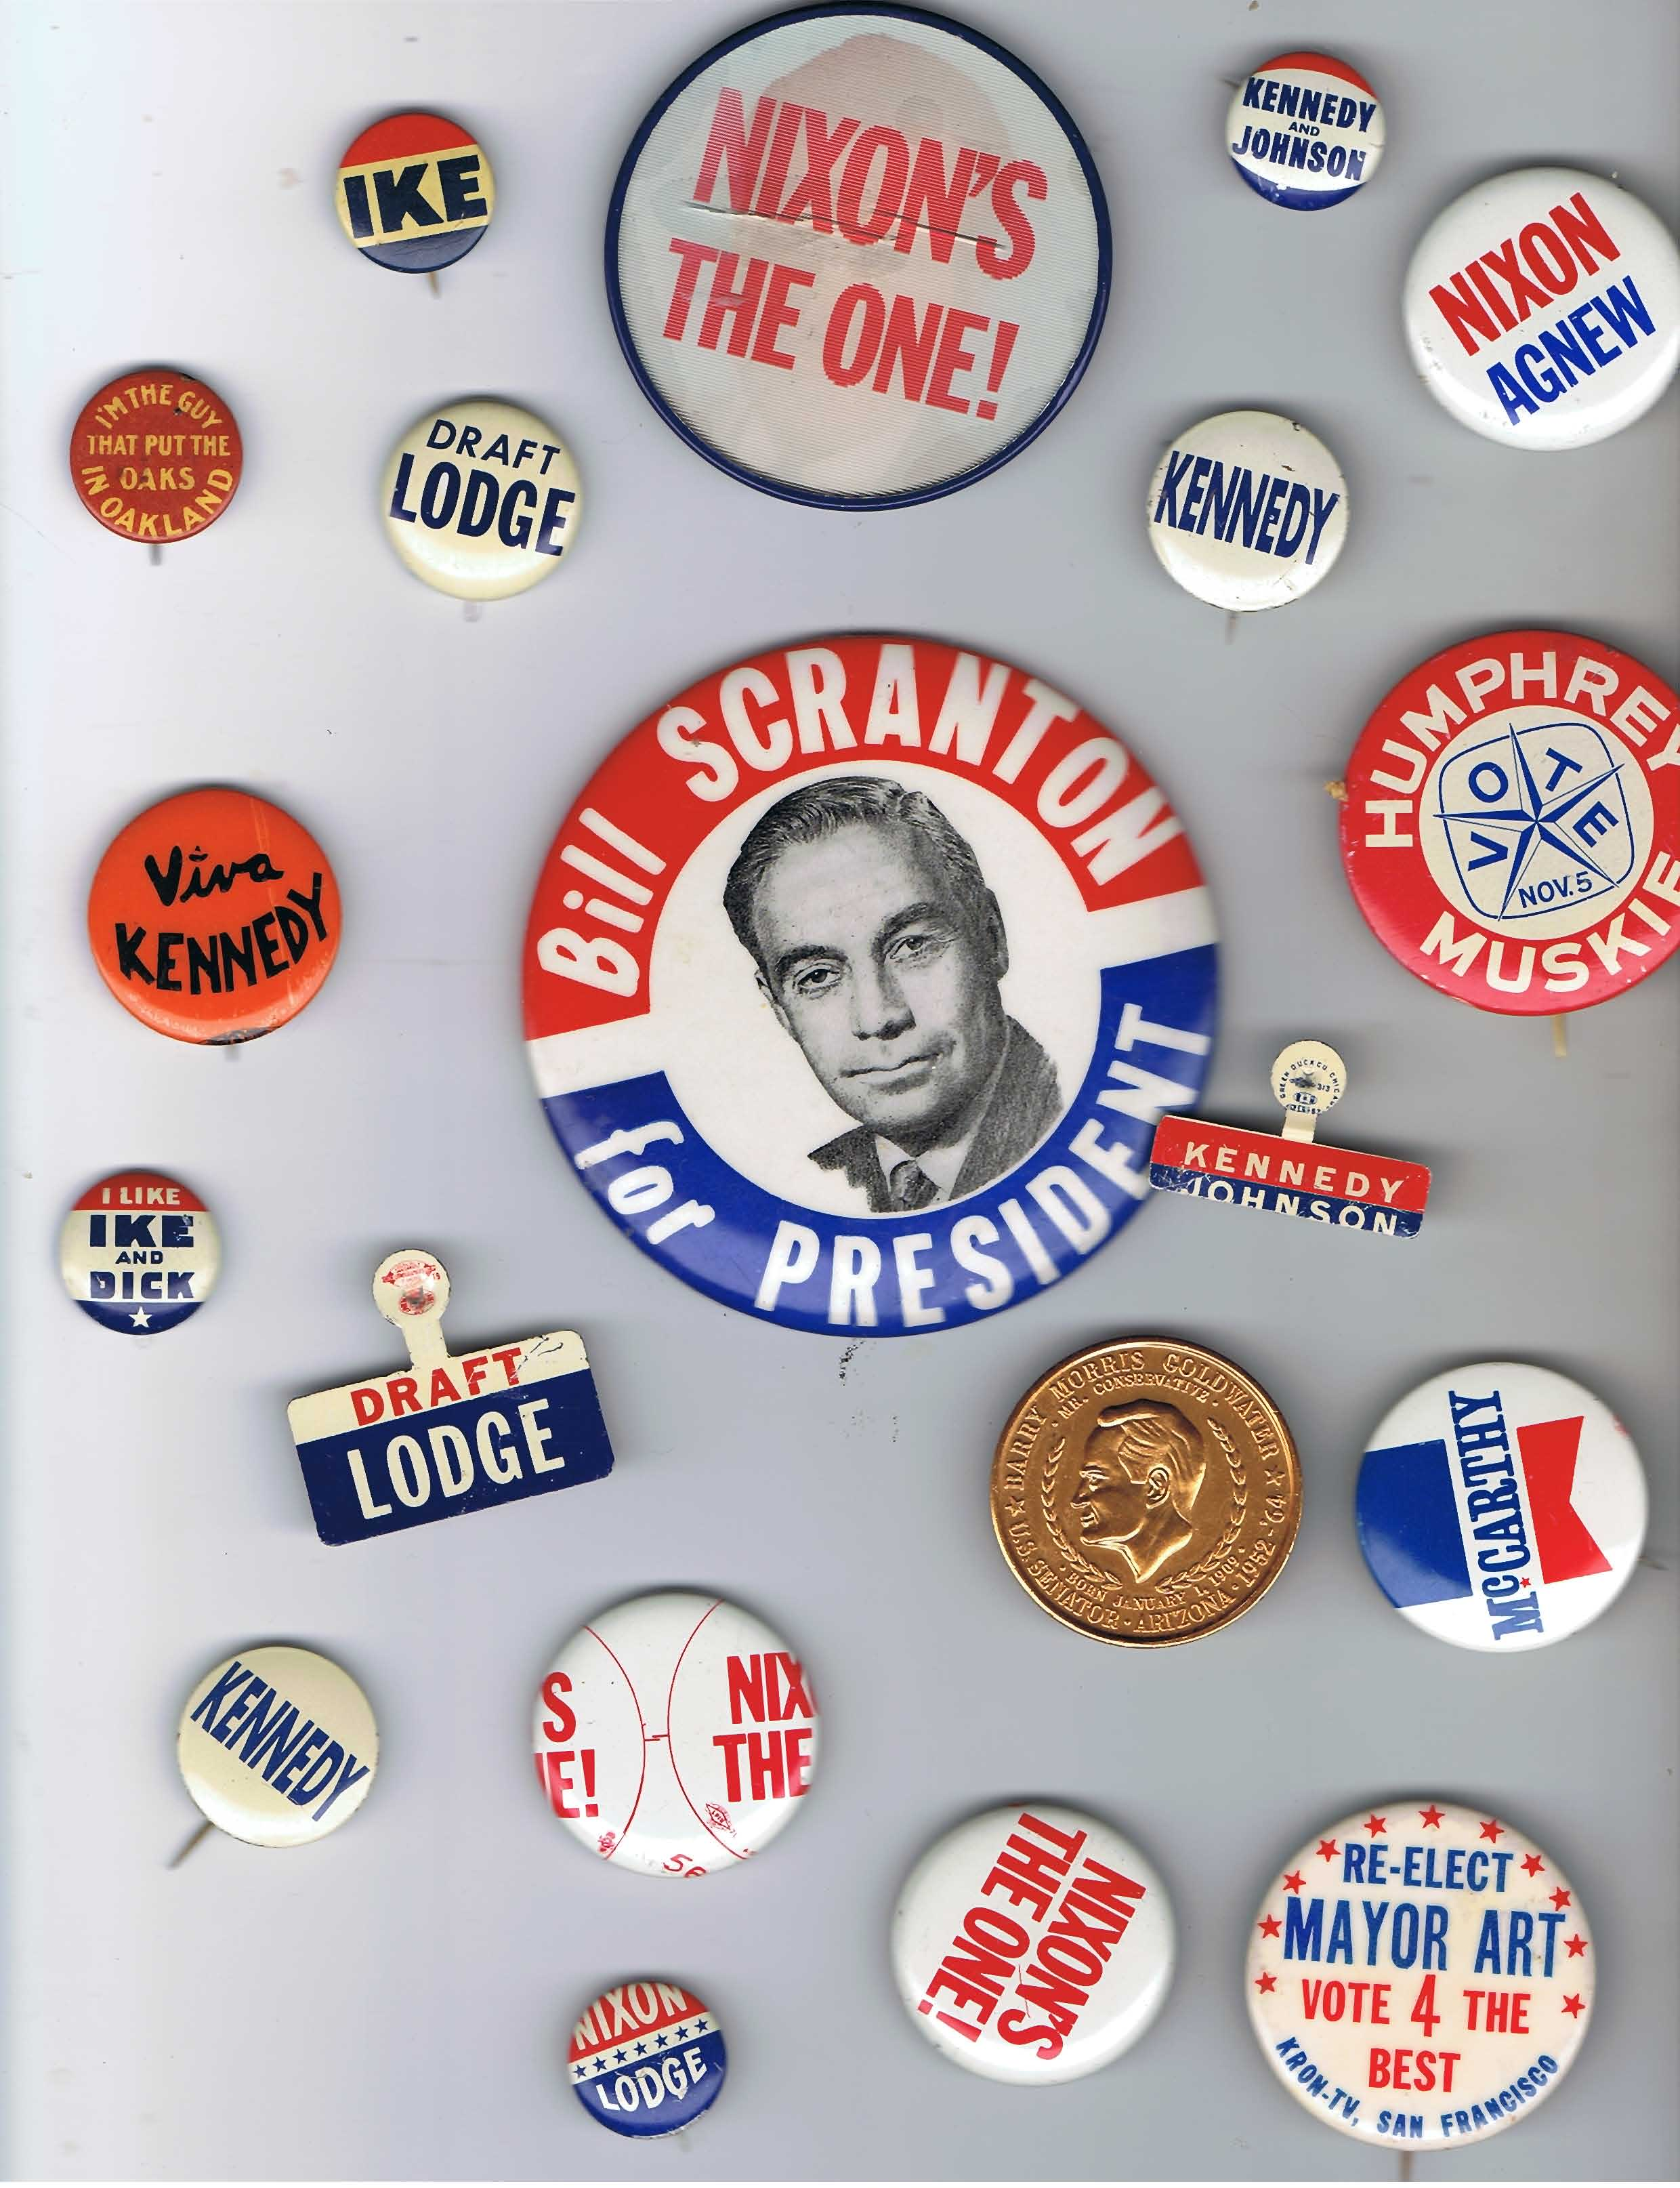 HISTORICAL POLITICAL BUTTONS – ANTI ROOSEVELT, GOLDWATER-JOHNSON, NIXON,IKE, ETC